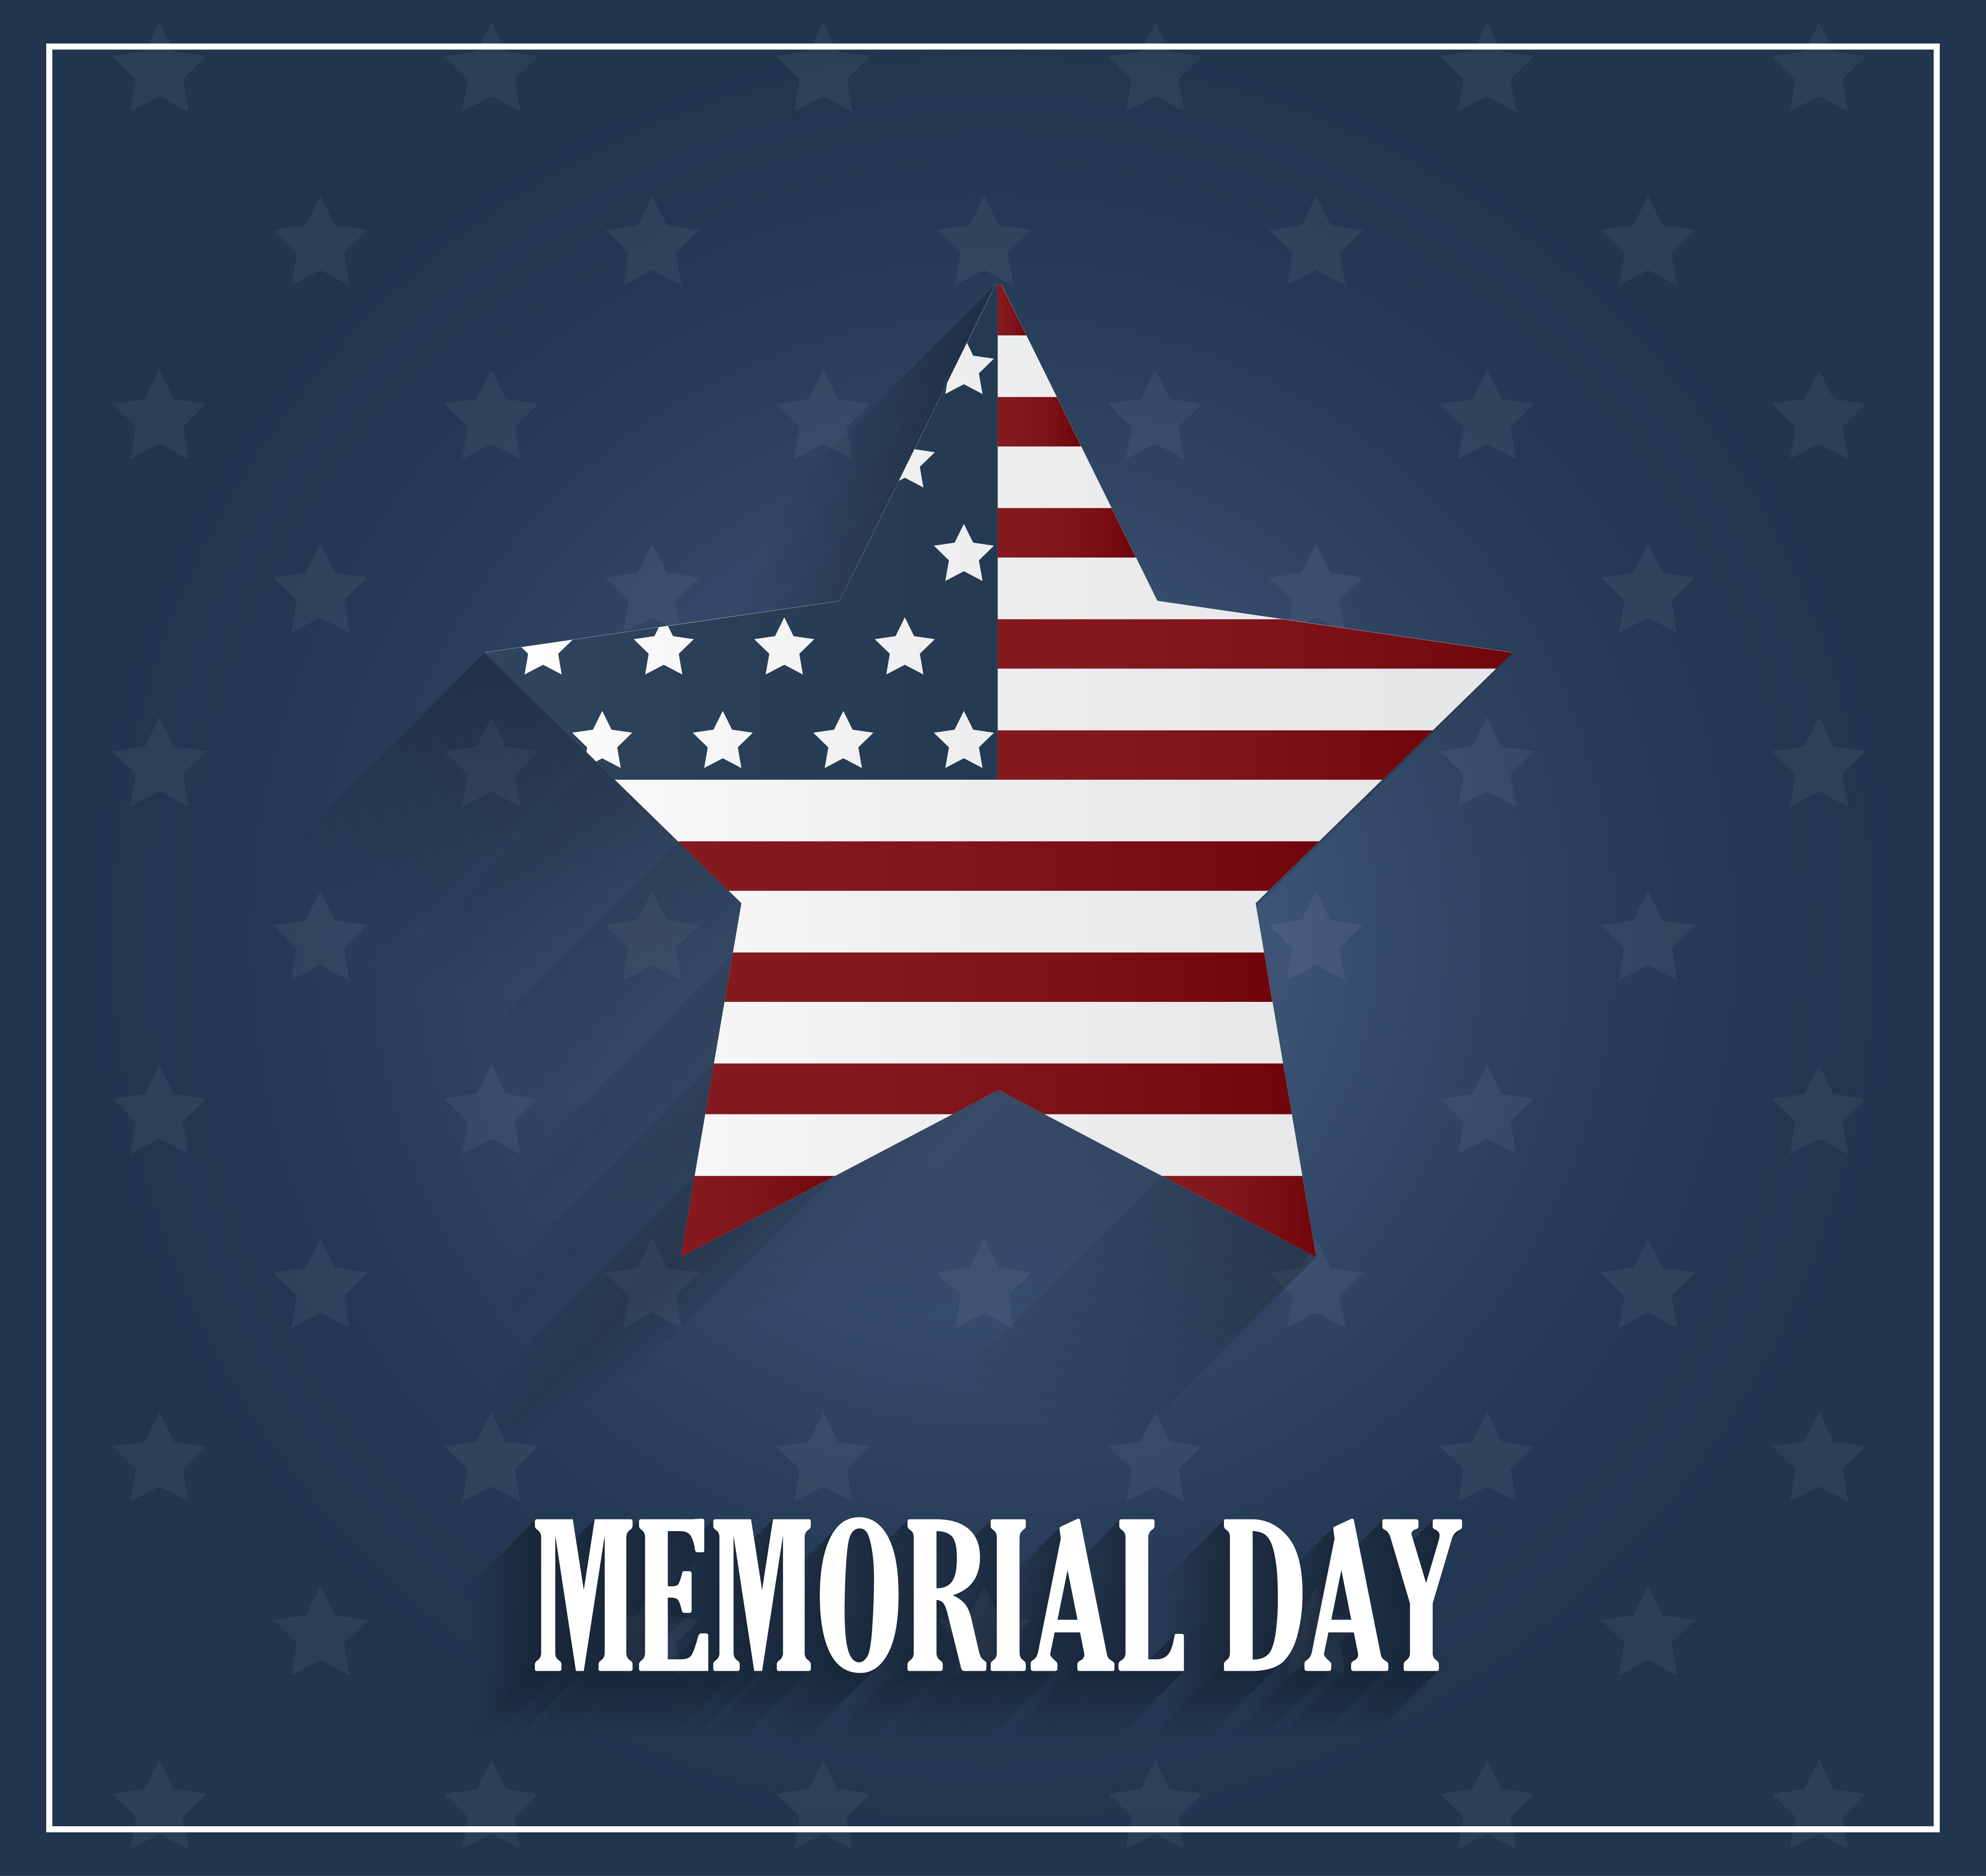 memorial day Memorial day for most americans, memorial day is the true beginning of summer the last monday of may is the day to celebrate the memories of patriots who have given their lives for freedom, and it's a day when we can take full advantage of the freedom we share.